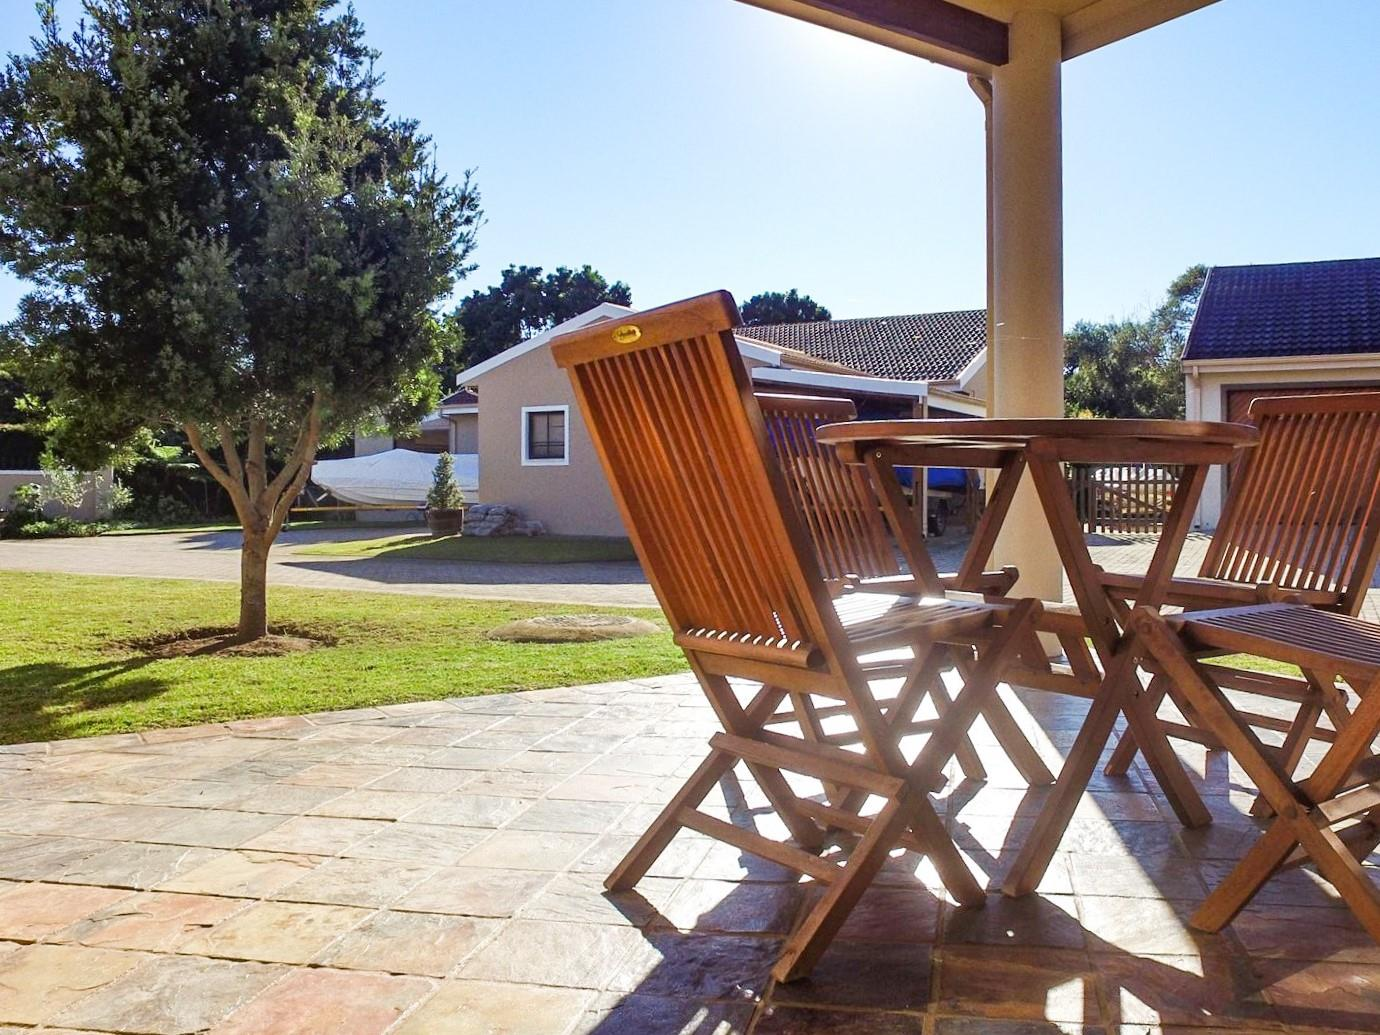 3 Bedroom House For Sale in Brenton On Lake